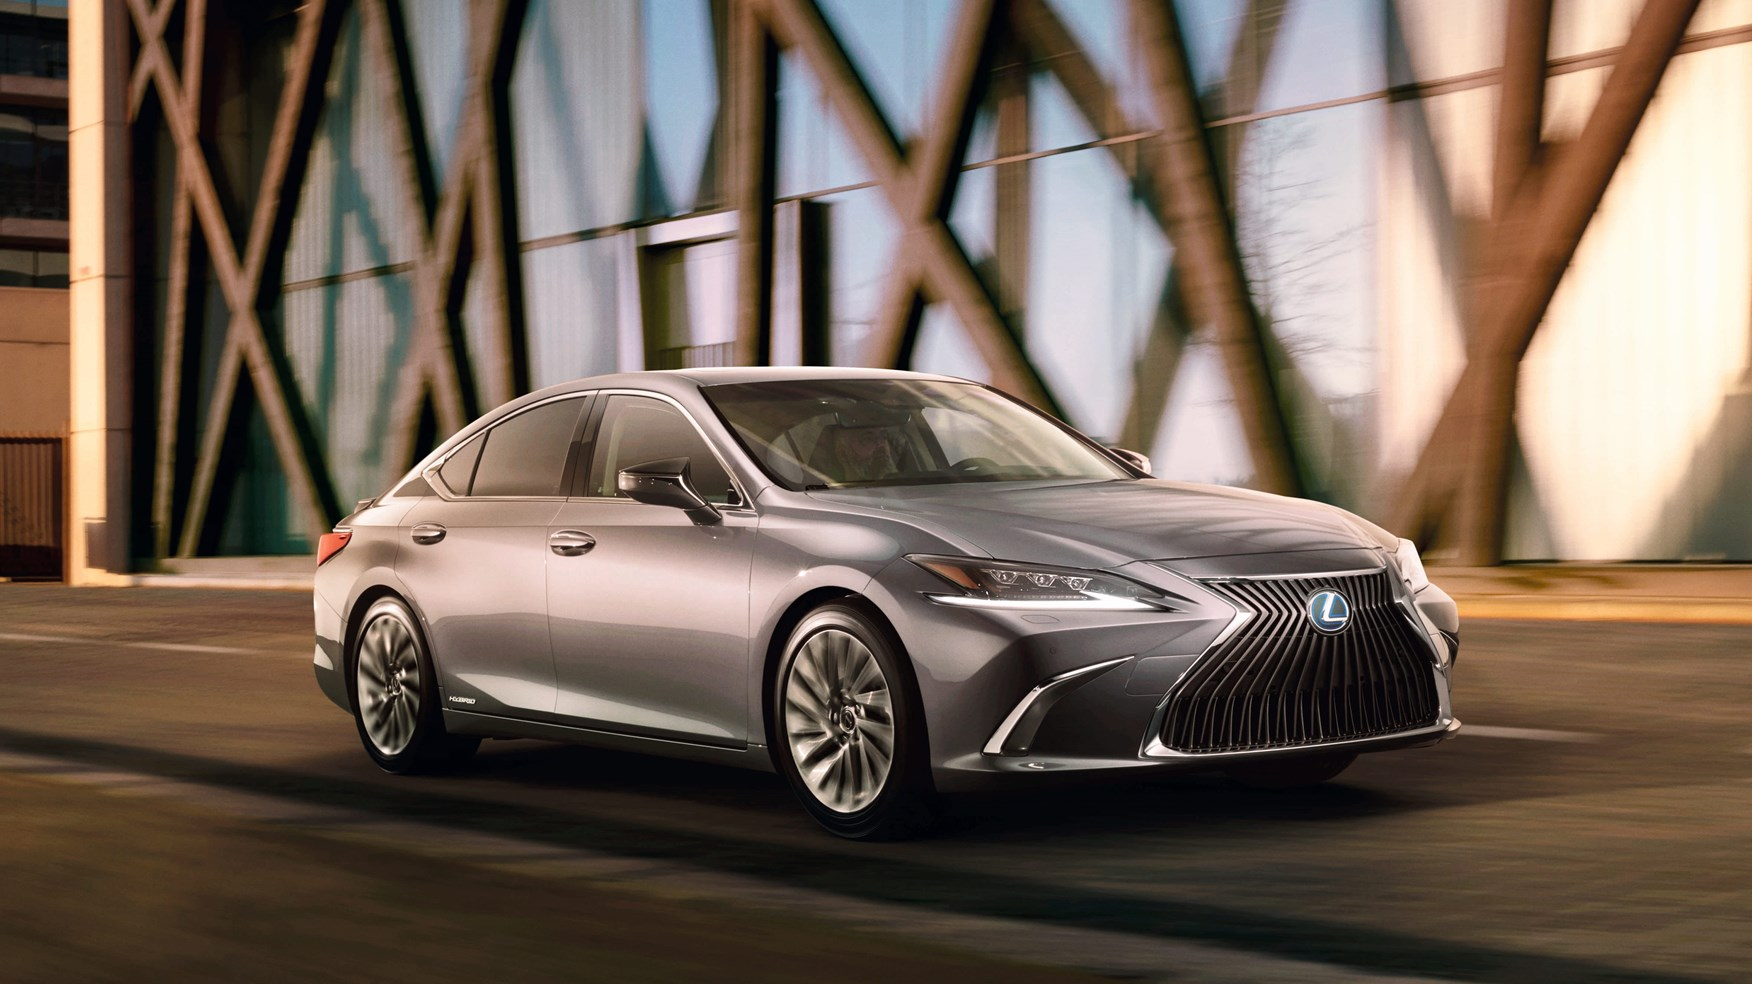 Drive by Intuition by Lexus